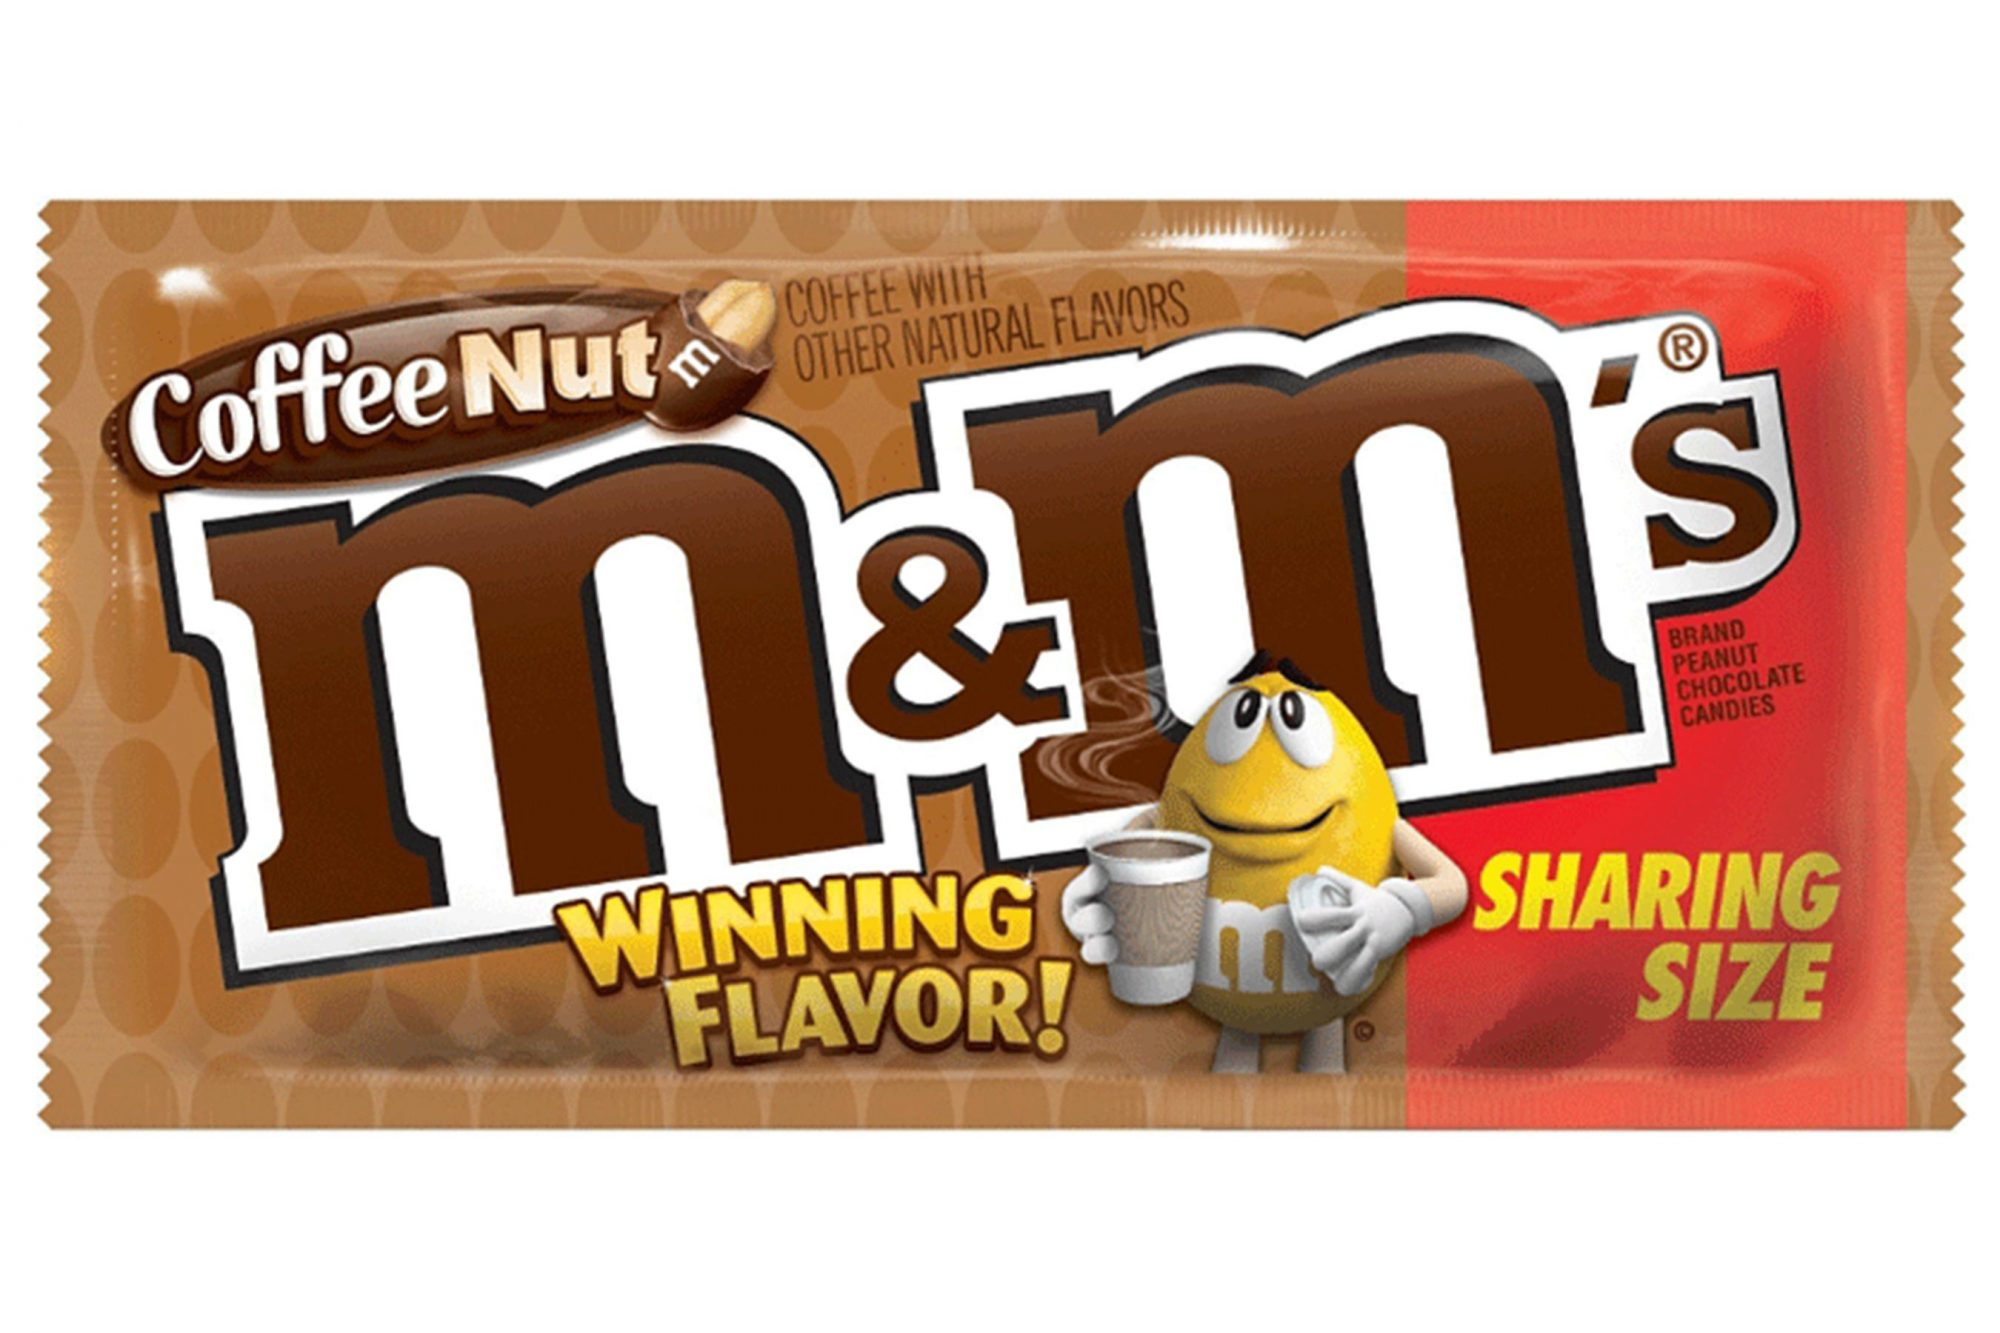 sharing-size-mars-mmm-coffee-nut-winning-flavor